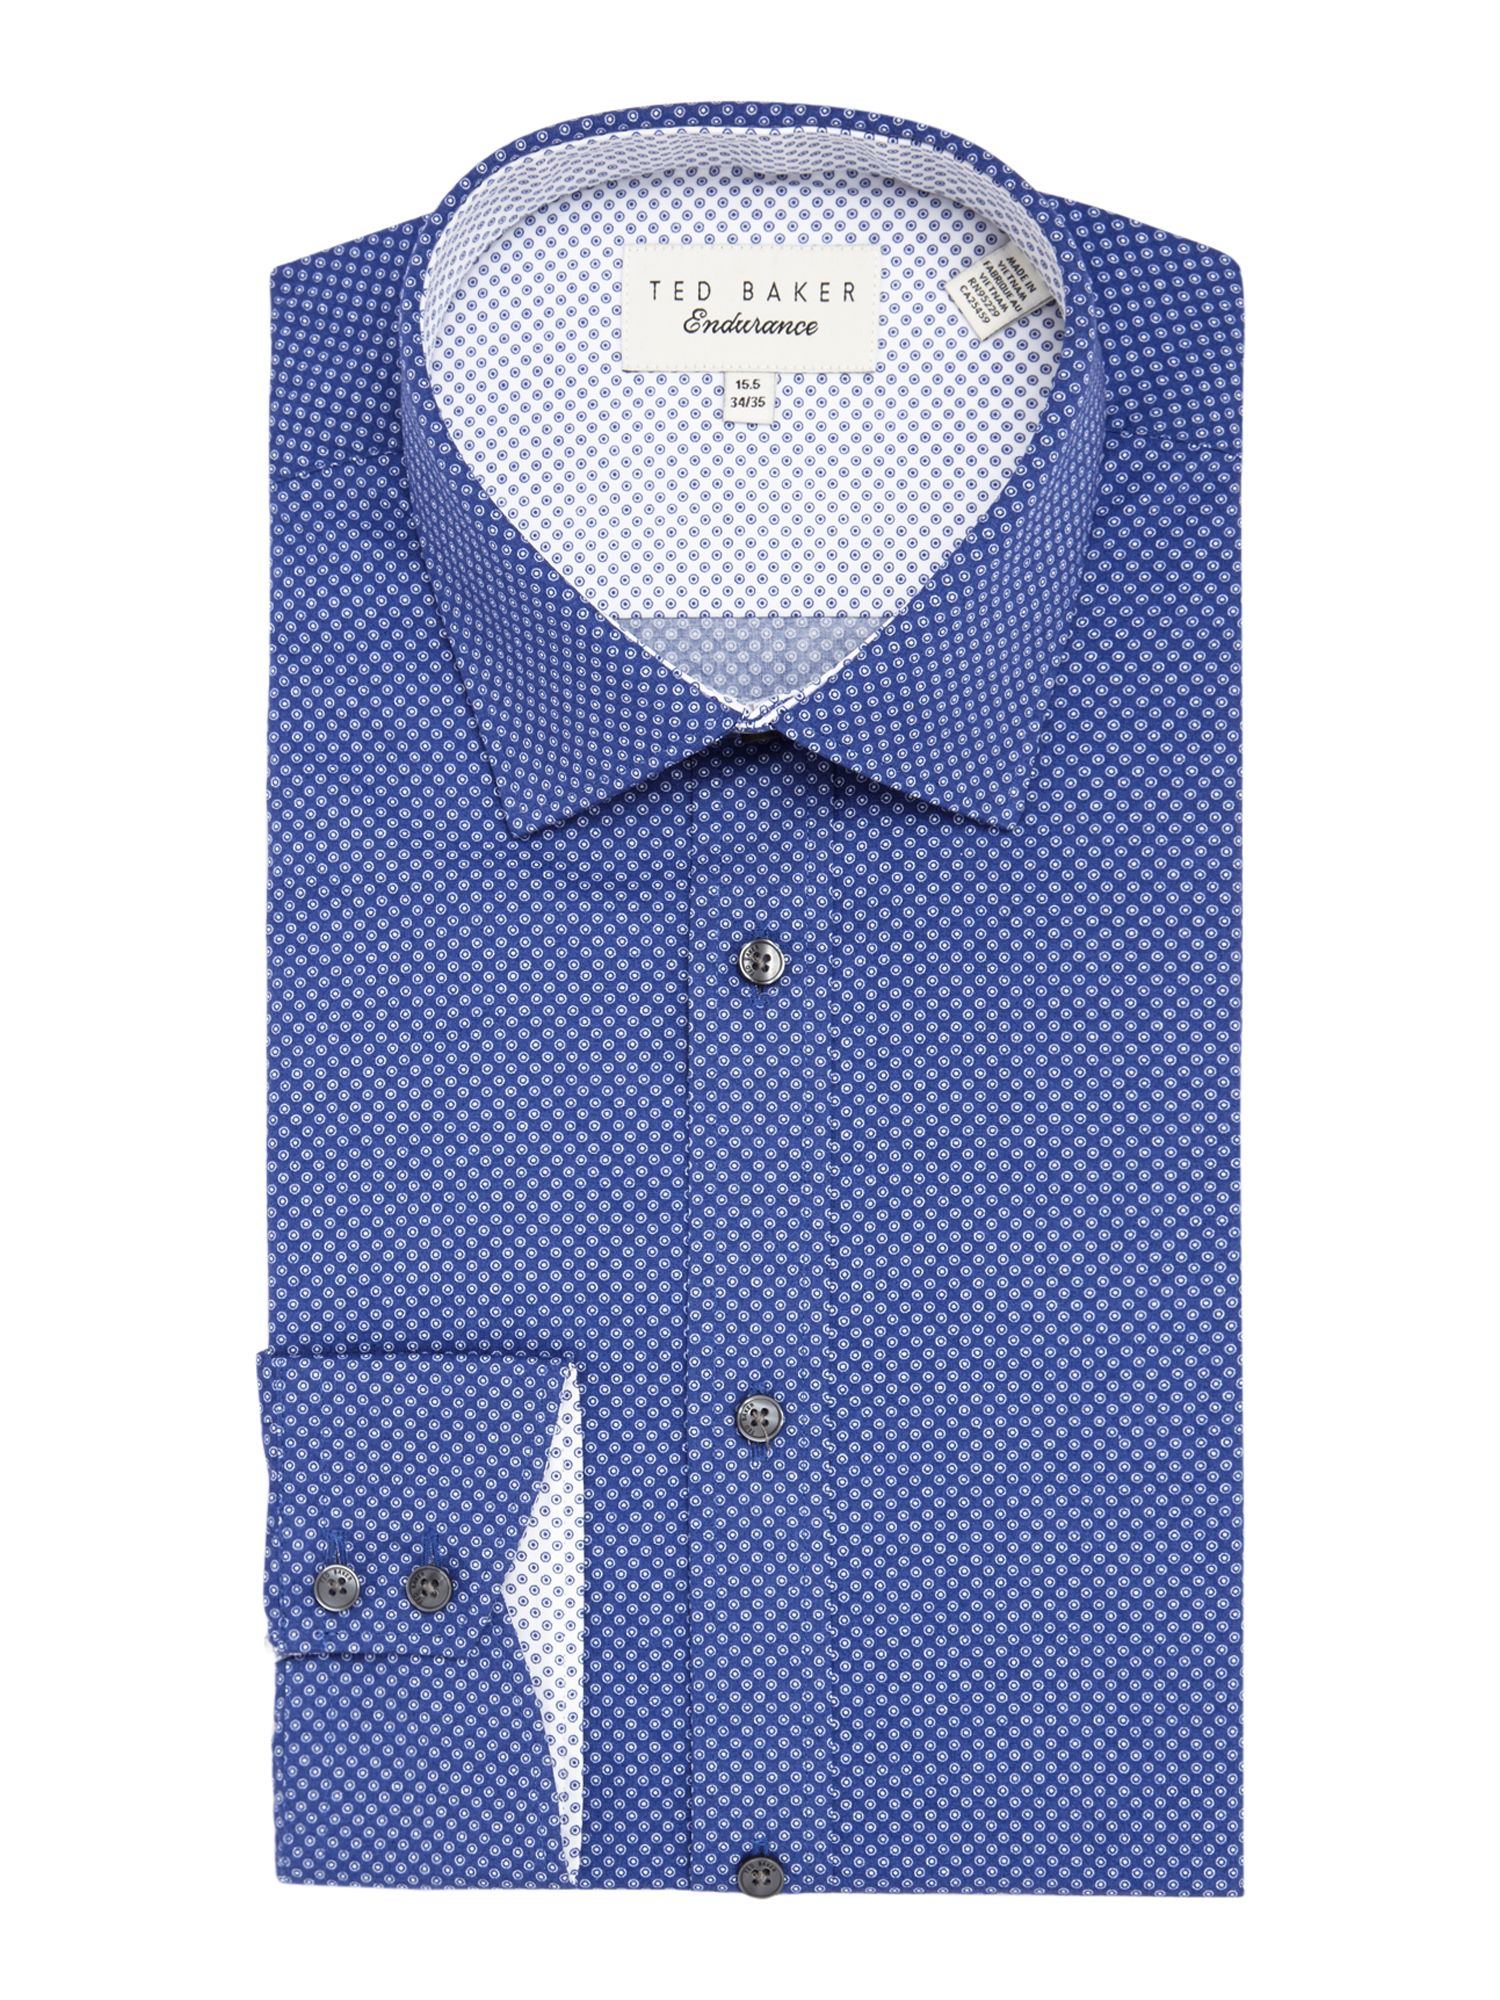 Ted baker archane slim fit geometric print shirt in blue for Ted baker blue shirt